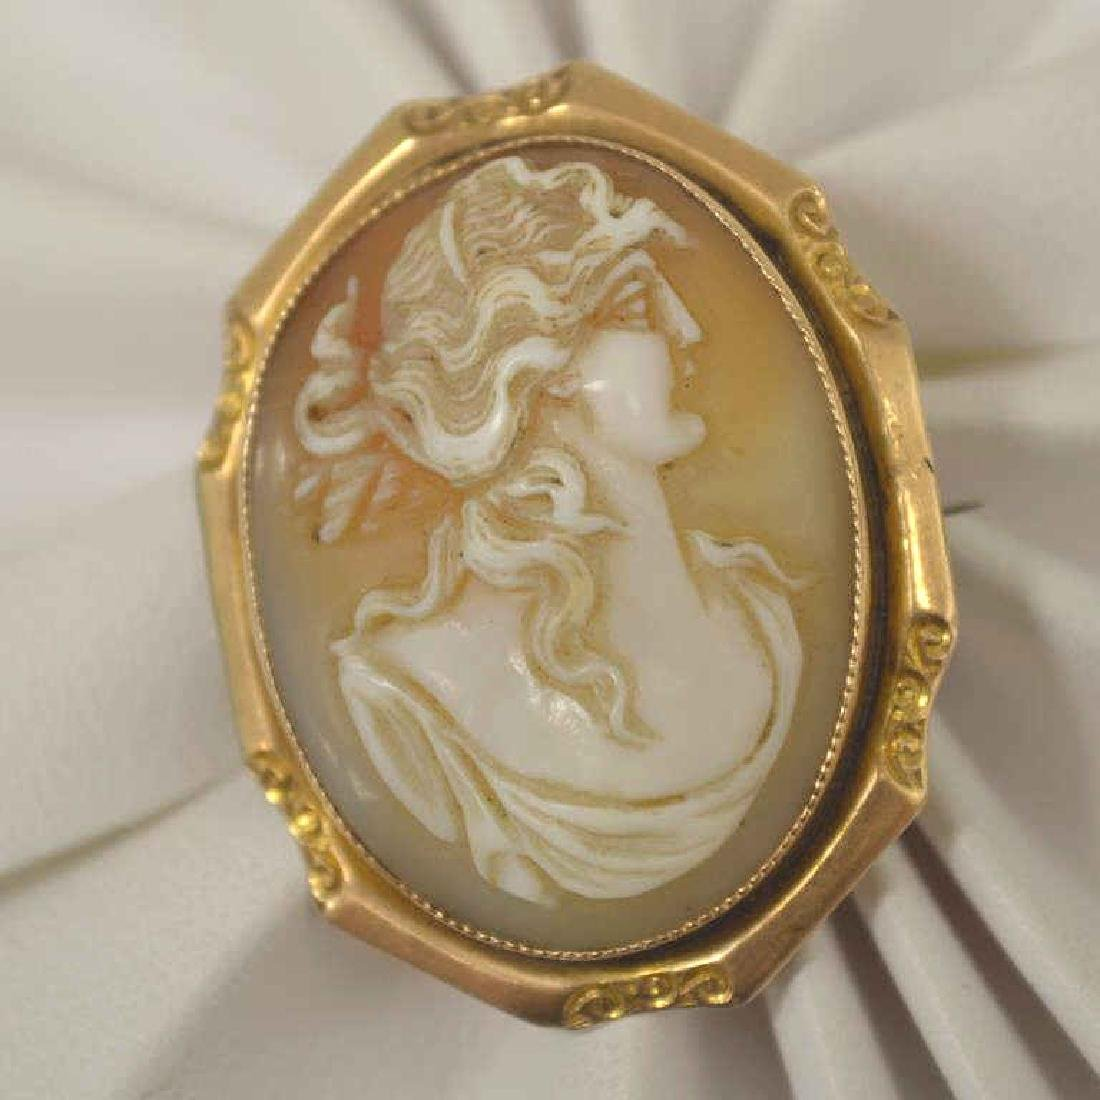 14kt yellow gold cameo brooch/ pendant